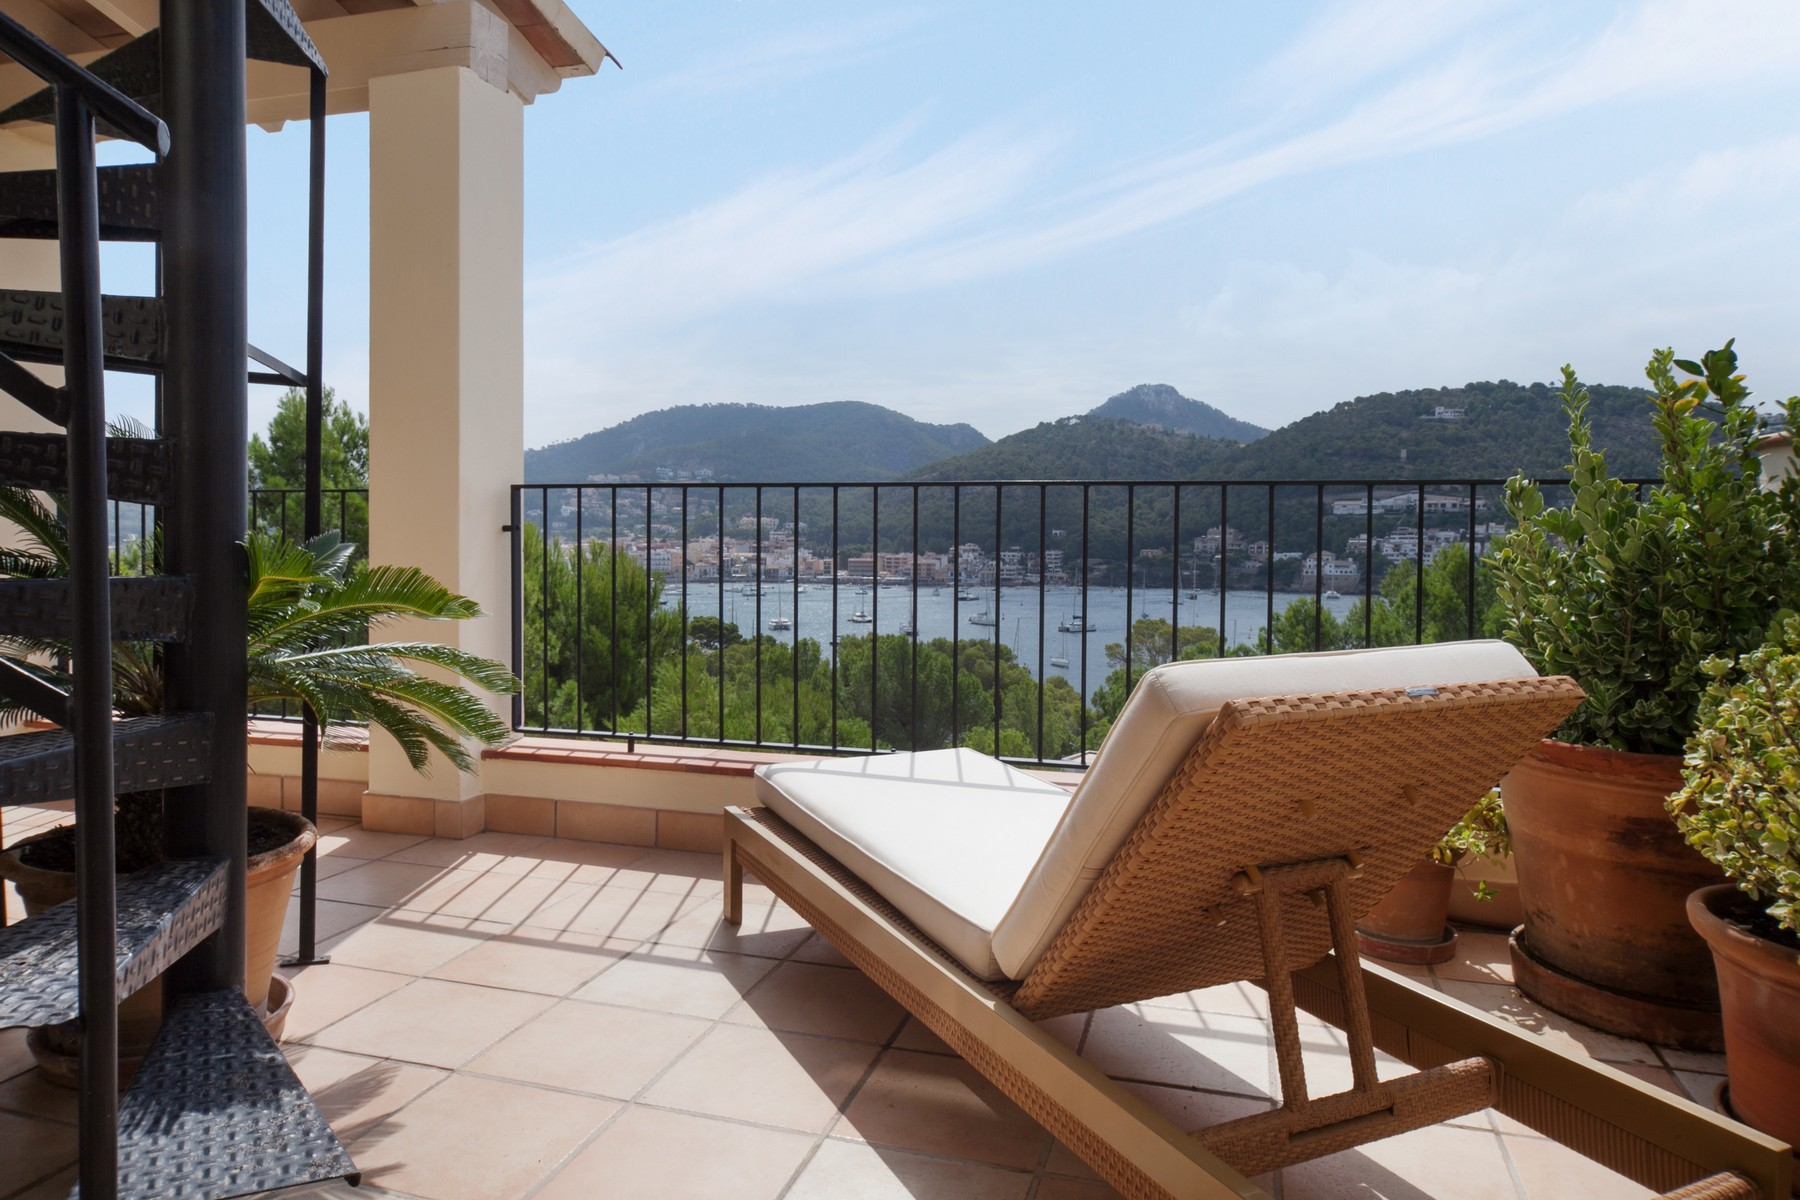 Apartamento por un Venta en Penthouse with ideal location in Port Andratx Port Andratx, Mallorca, 07157 España